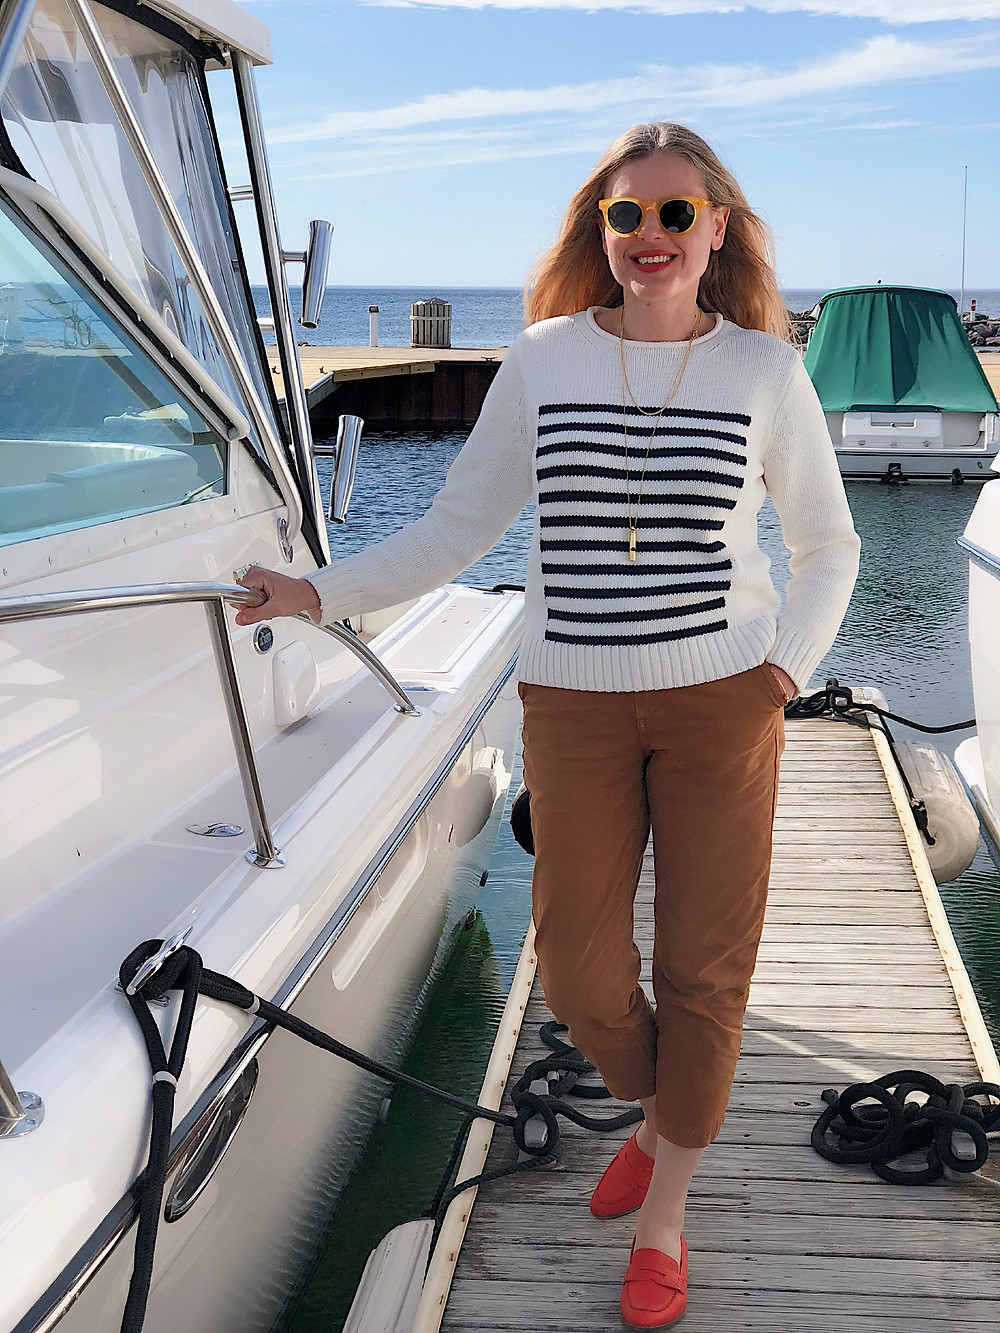 woman on pier by a boat